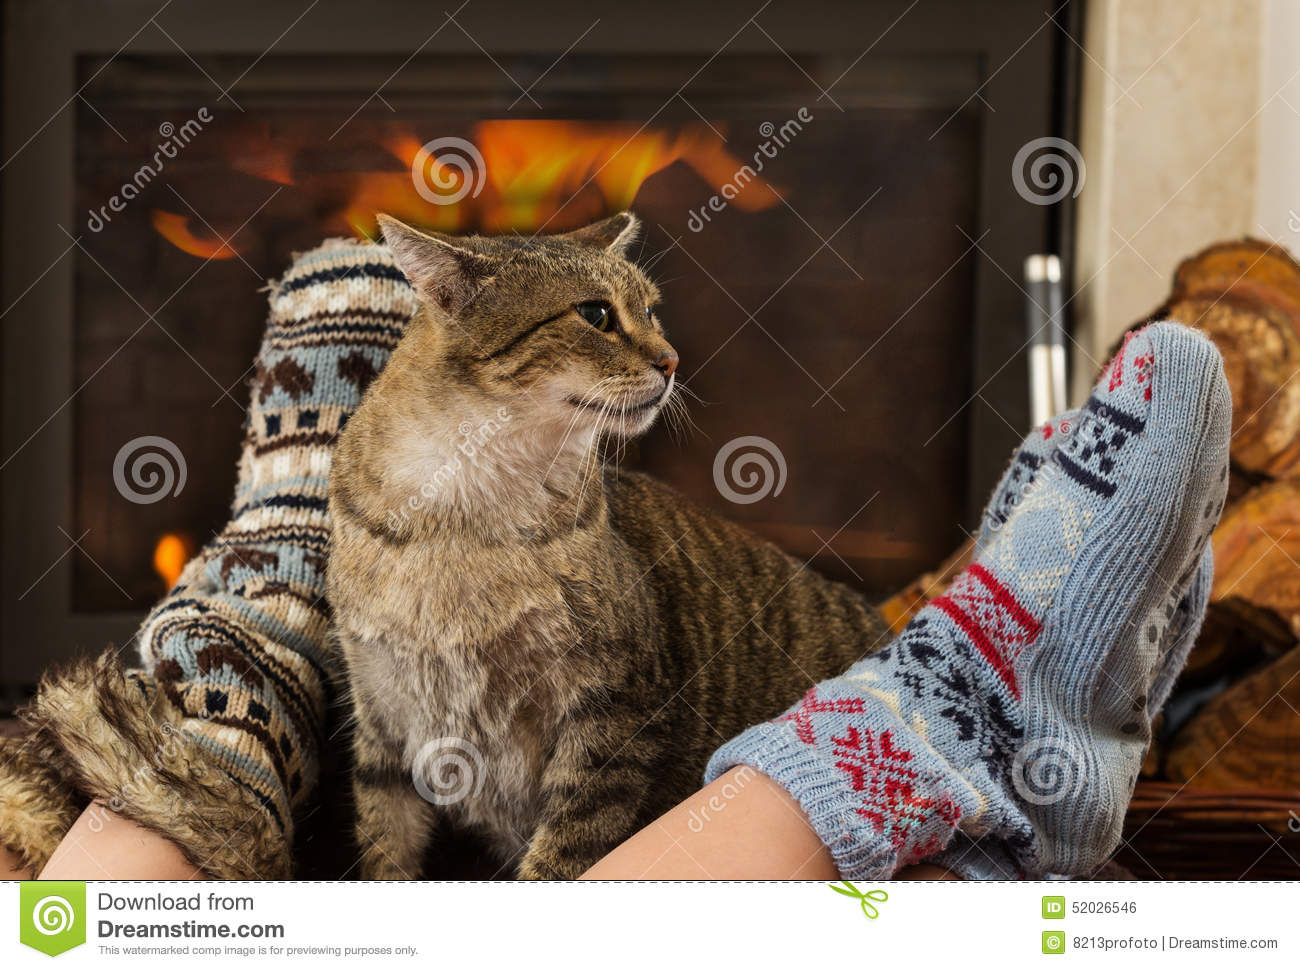 Cat And Feet In Front Of The Fireplace Stock Photo - Image: 52026546